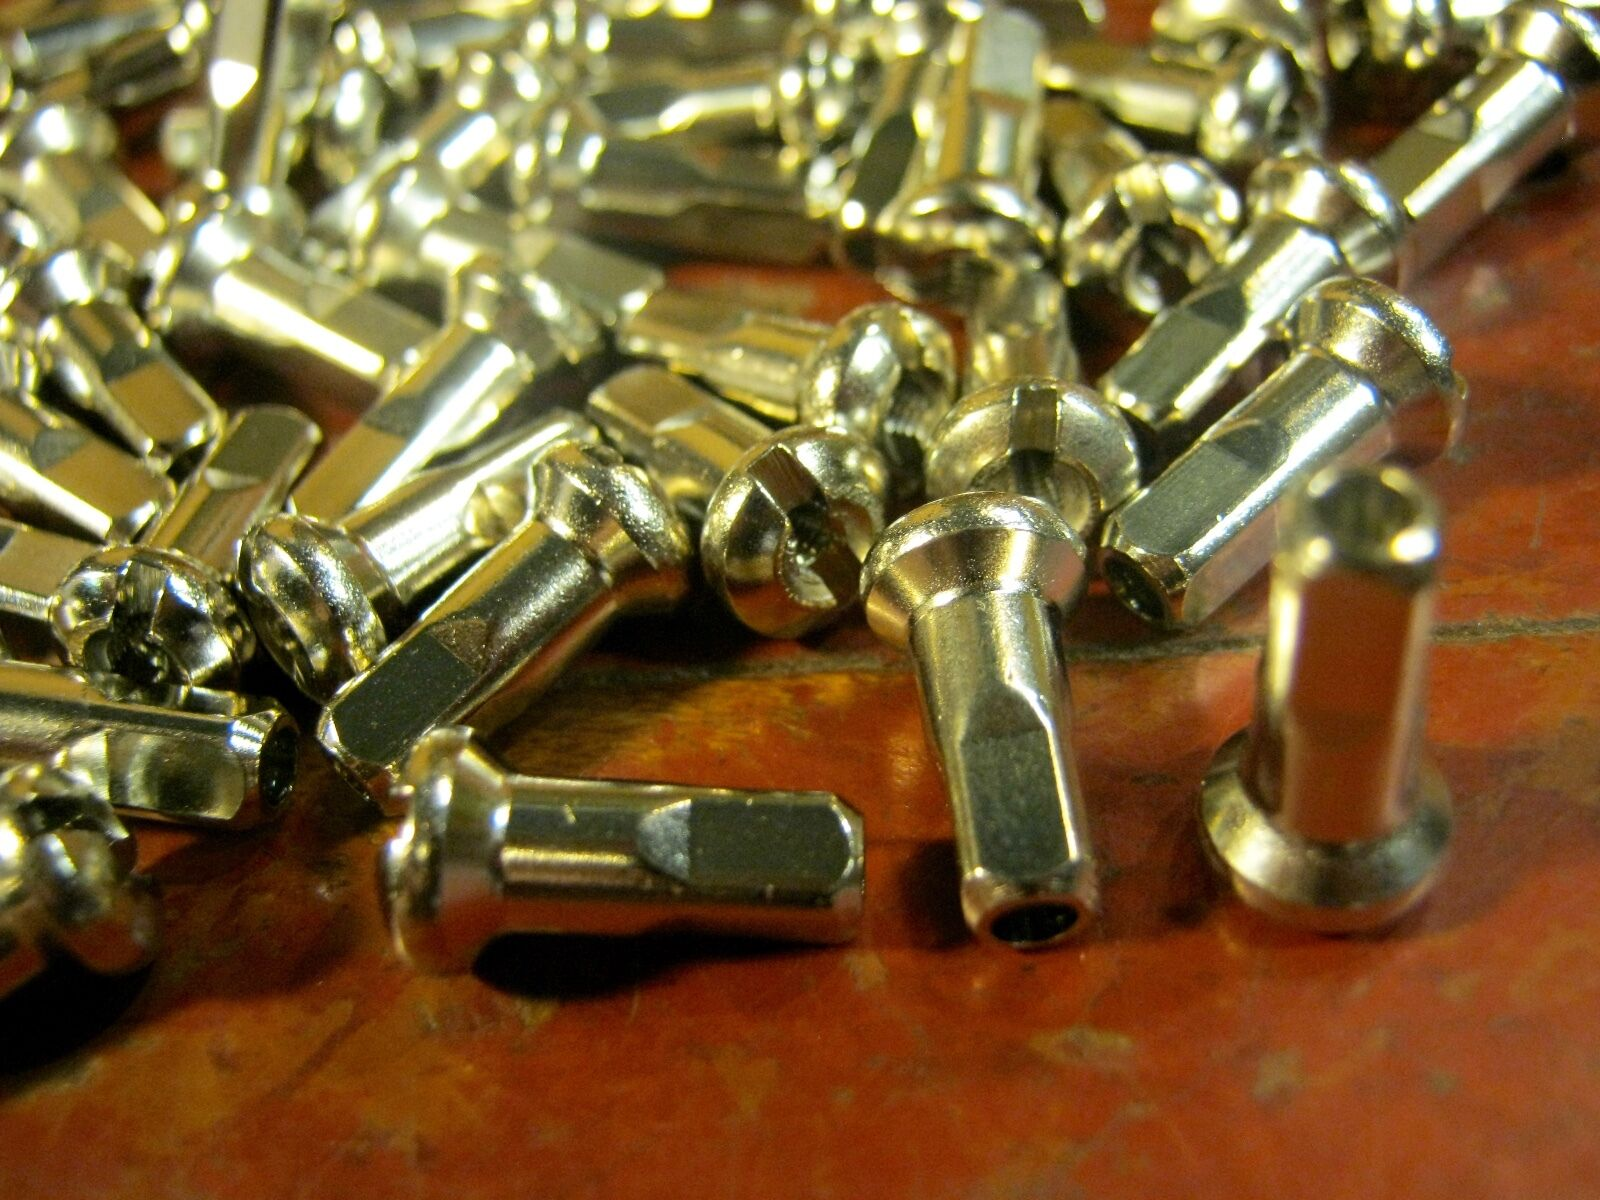 Bicycle brass spoke nipples 14G 2.0mm 100 count gauge CHROME 16mm long